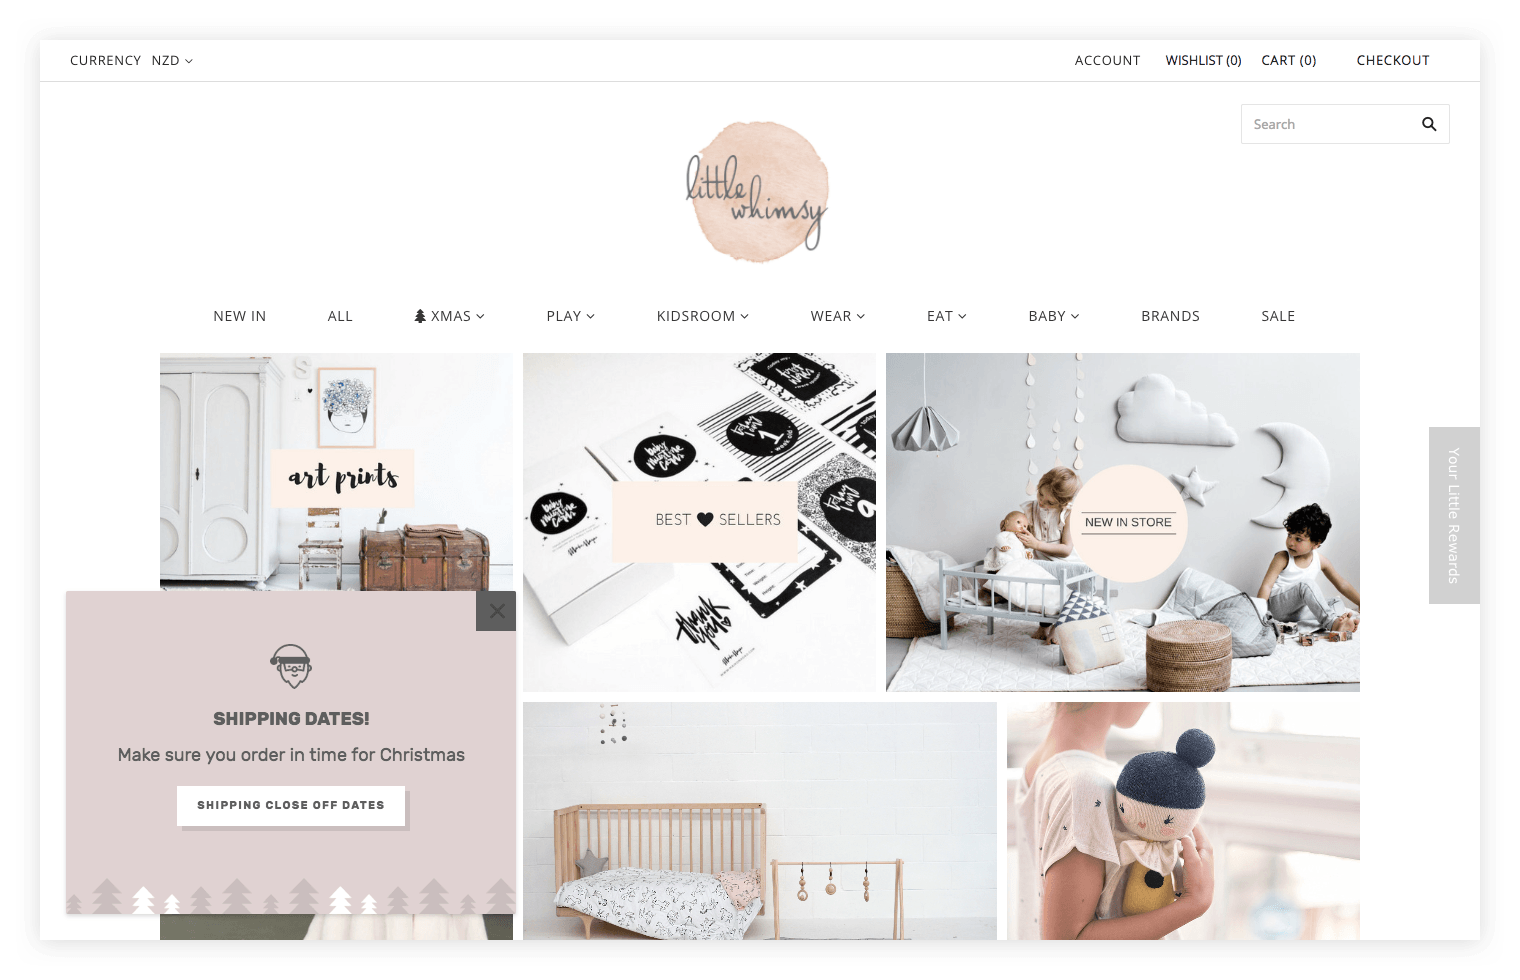 Little Whimsy homepage with shipping reminder popup